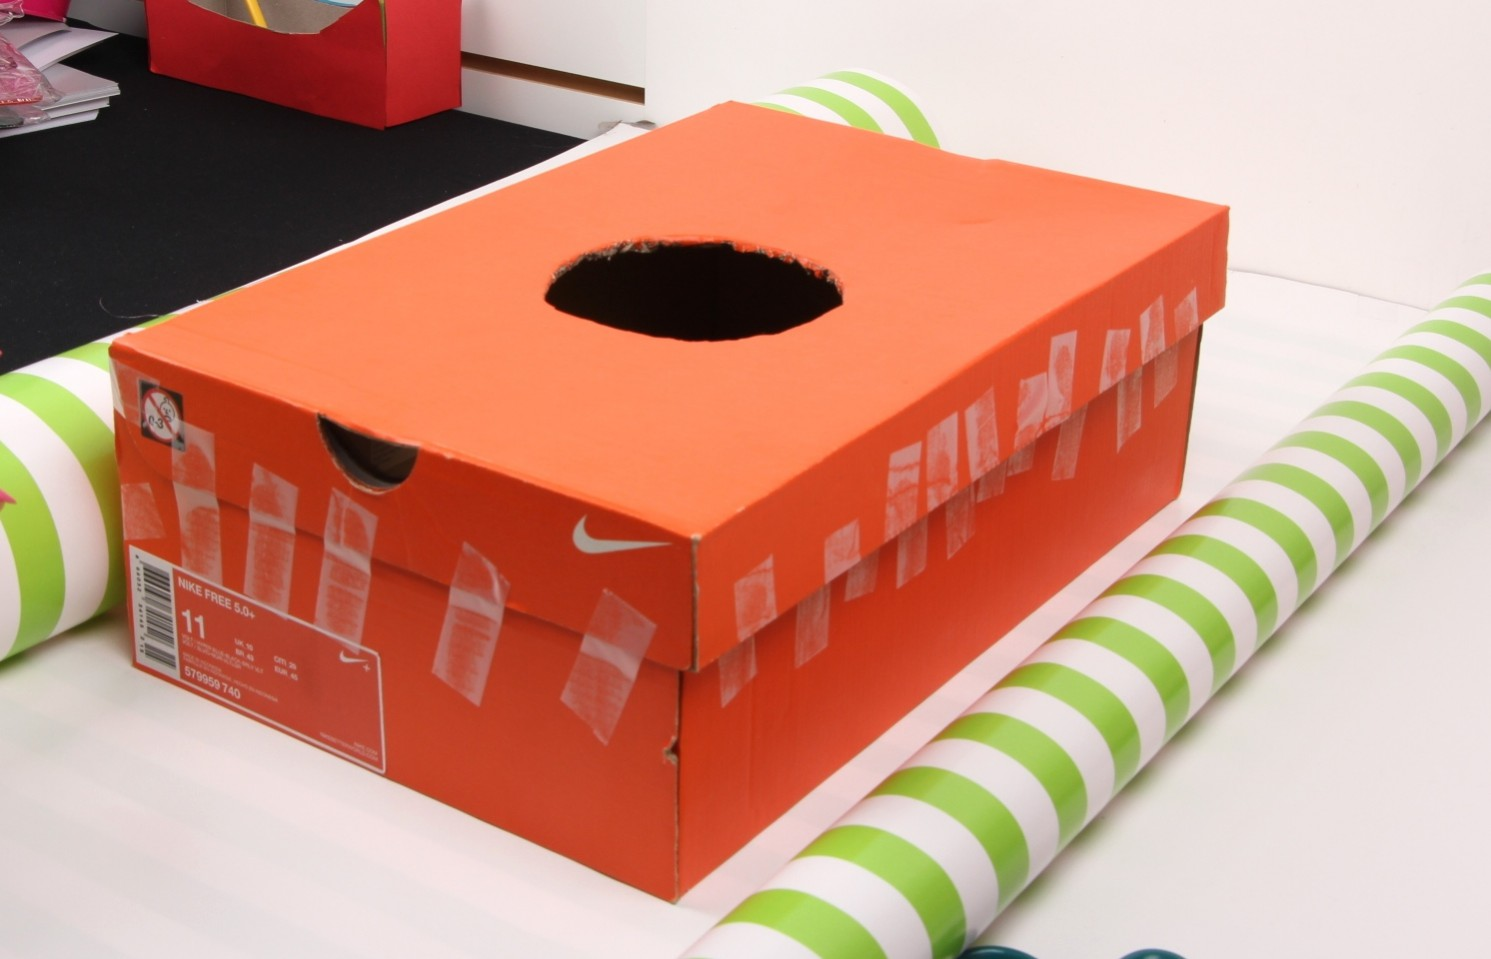 Earth day craft diy shoe box birdhouse jam blog for What can i make with boxes